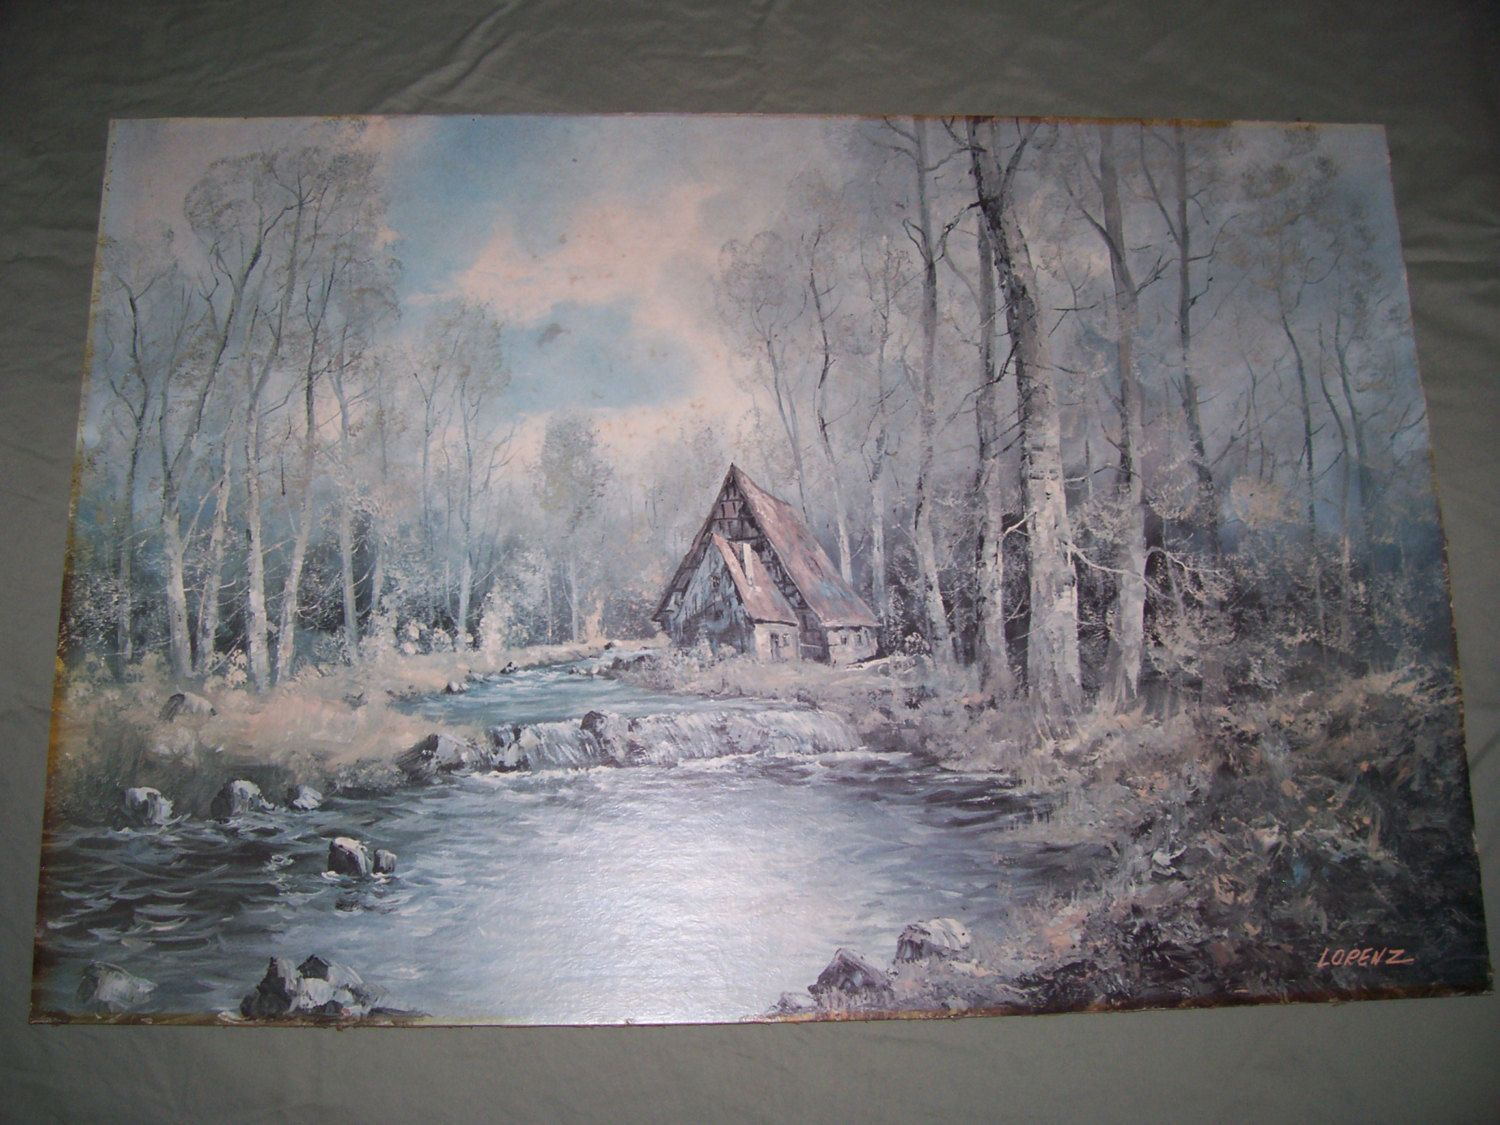 Old Large Signed Print By Lorenz SECLUDED CABIN In The WOODS